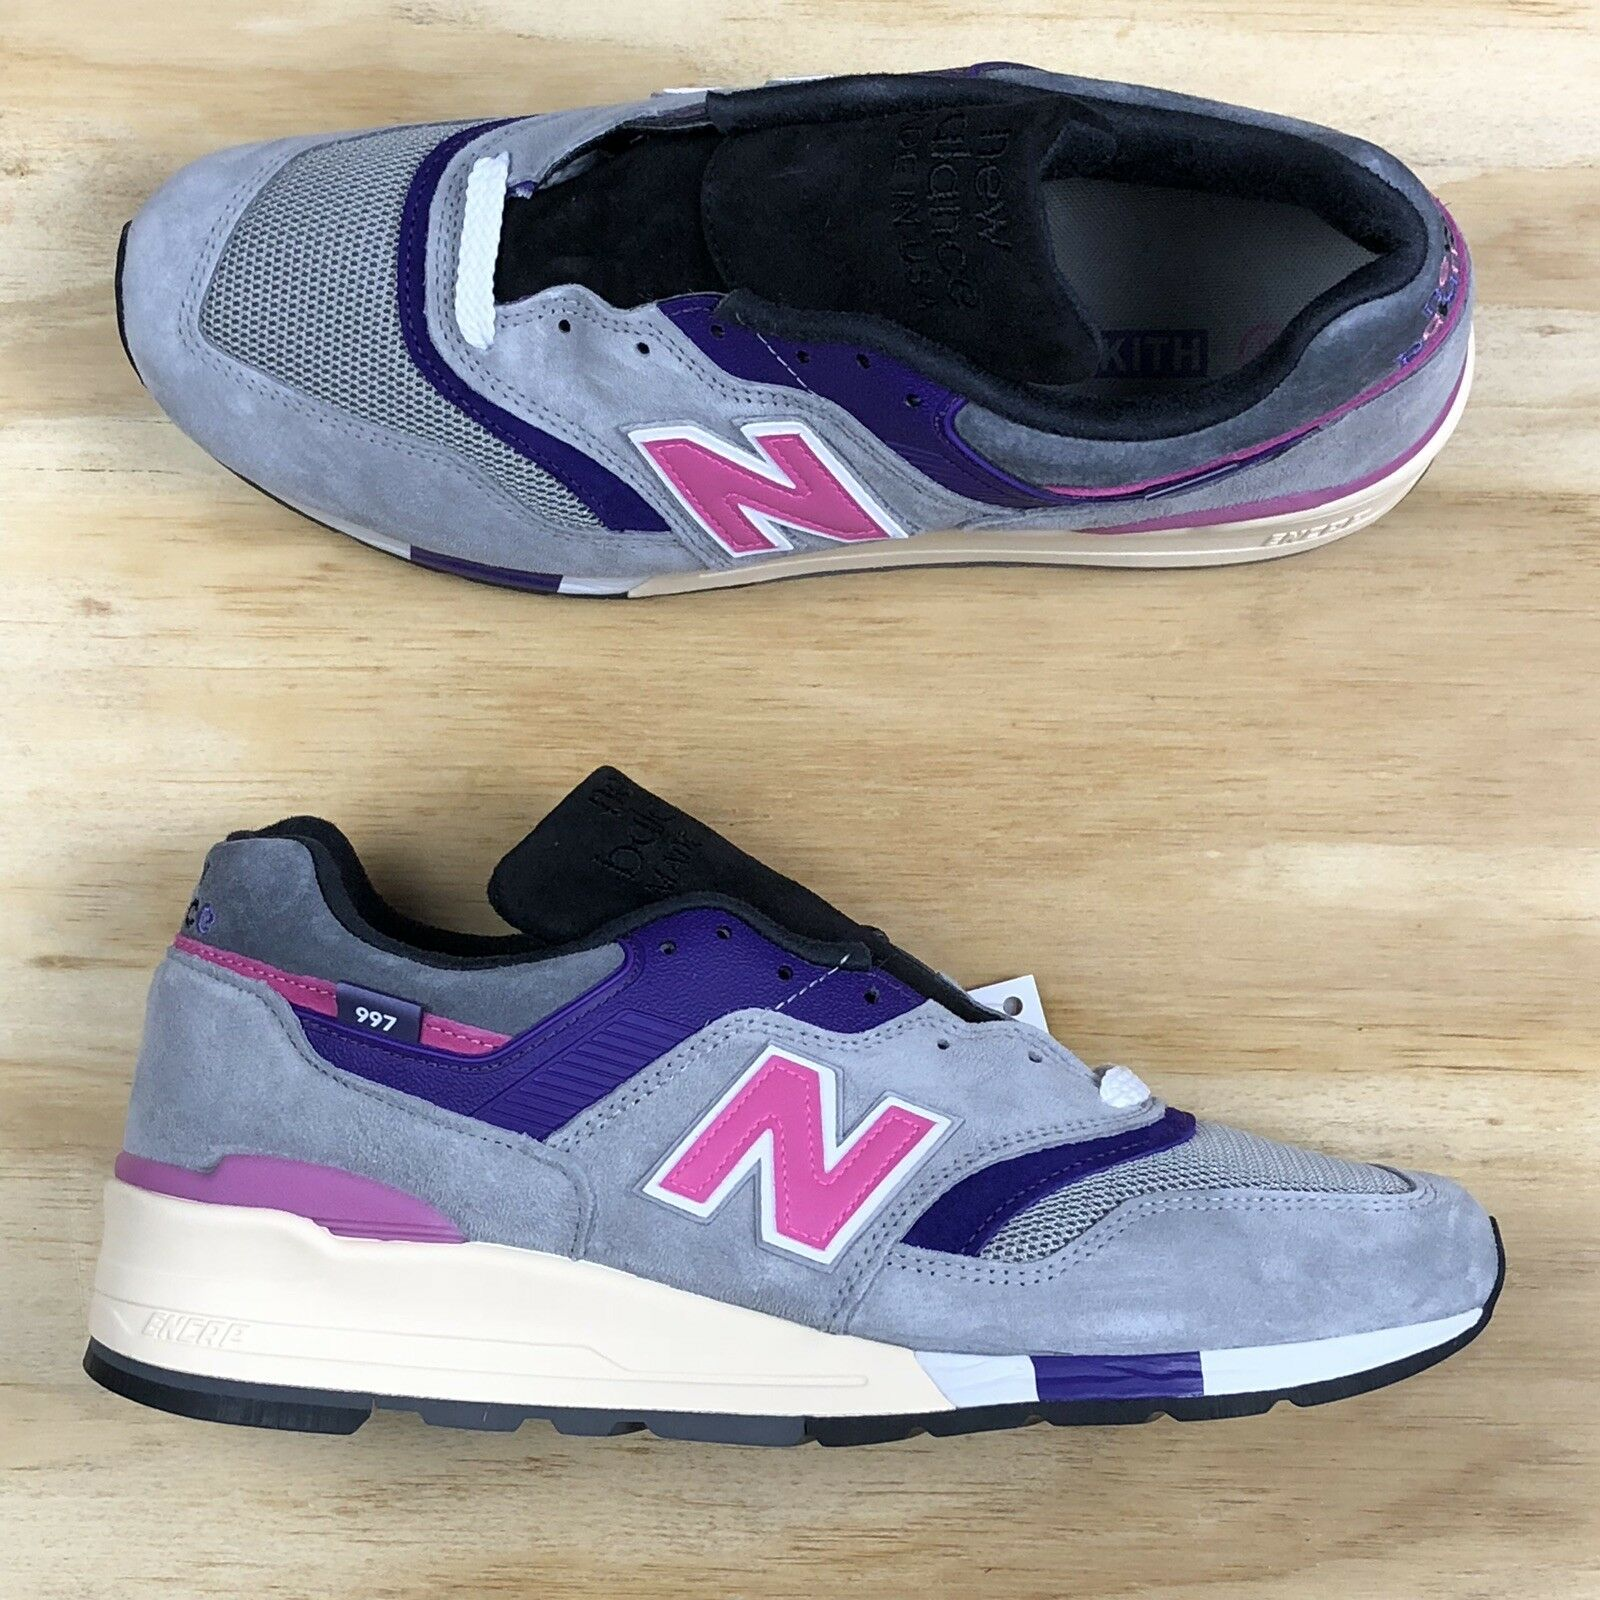 9ee6faac54e3 New Balance 997 Kith Kith Kith x United Arrows And Sons Made In USA Grey  Pink ...